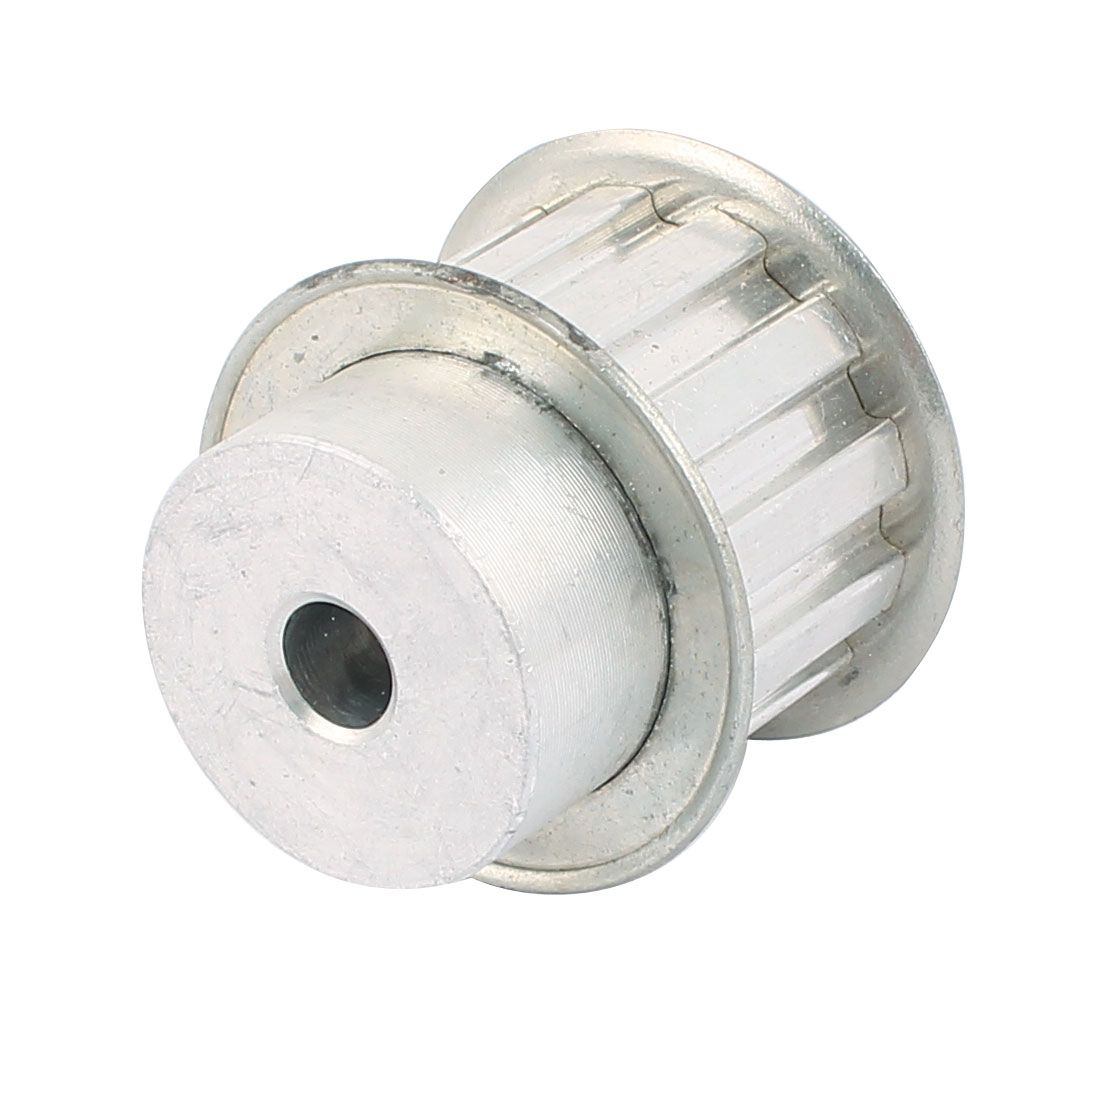 XL12 22mm Belt Width 8mm Bore 12 Teeth Synchronous Timing Pulley Silver Tone